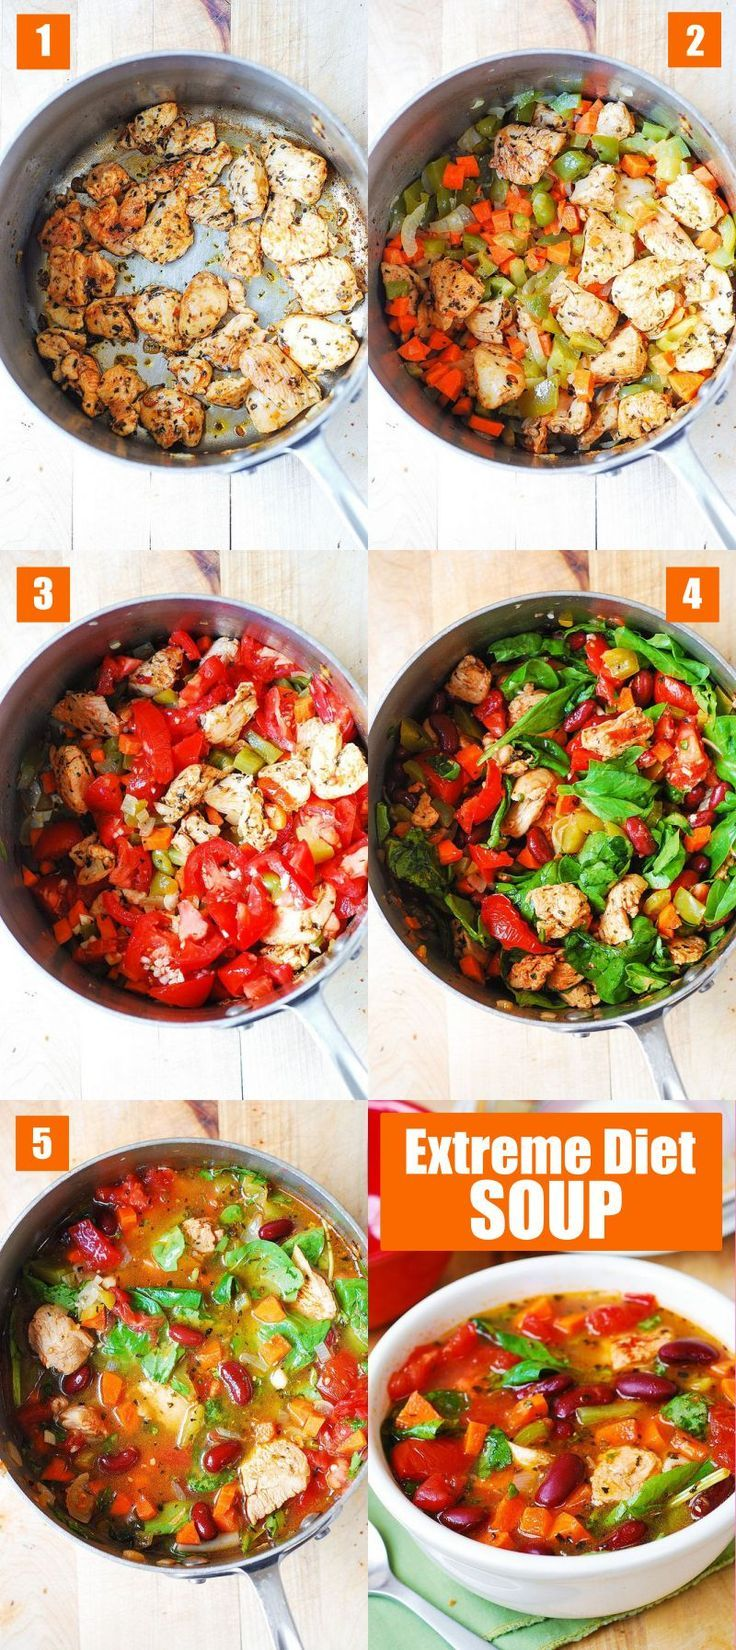 Lose Up To 6 Pounds Per Week With The Extreme Diet Soup